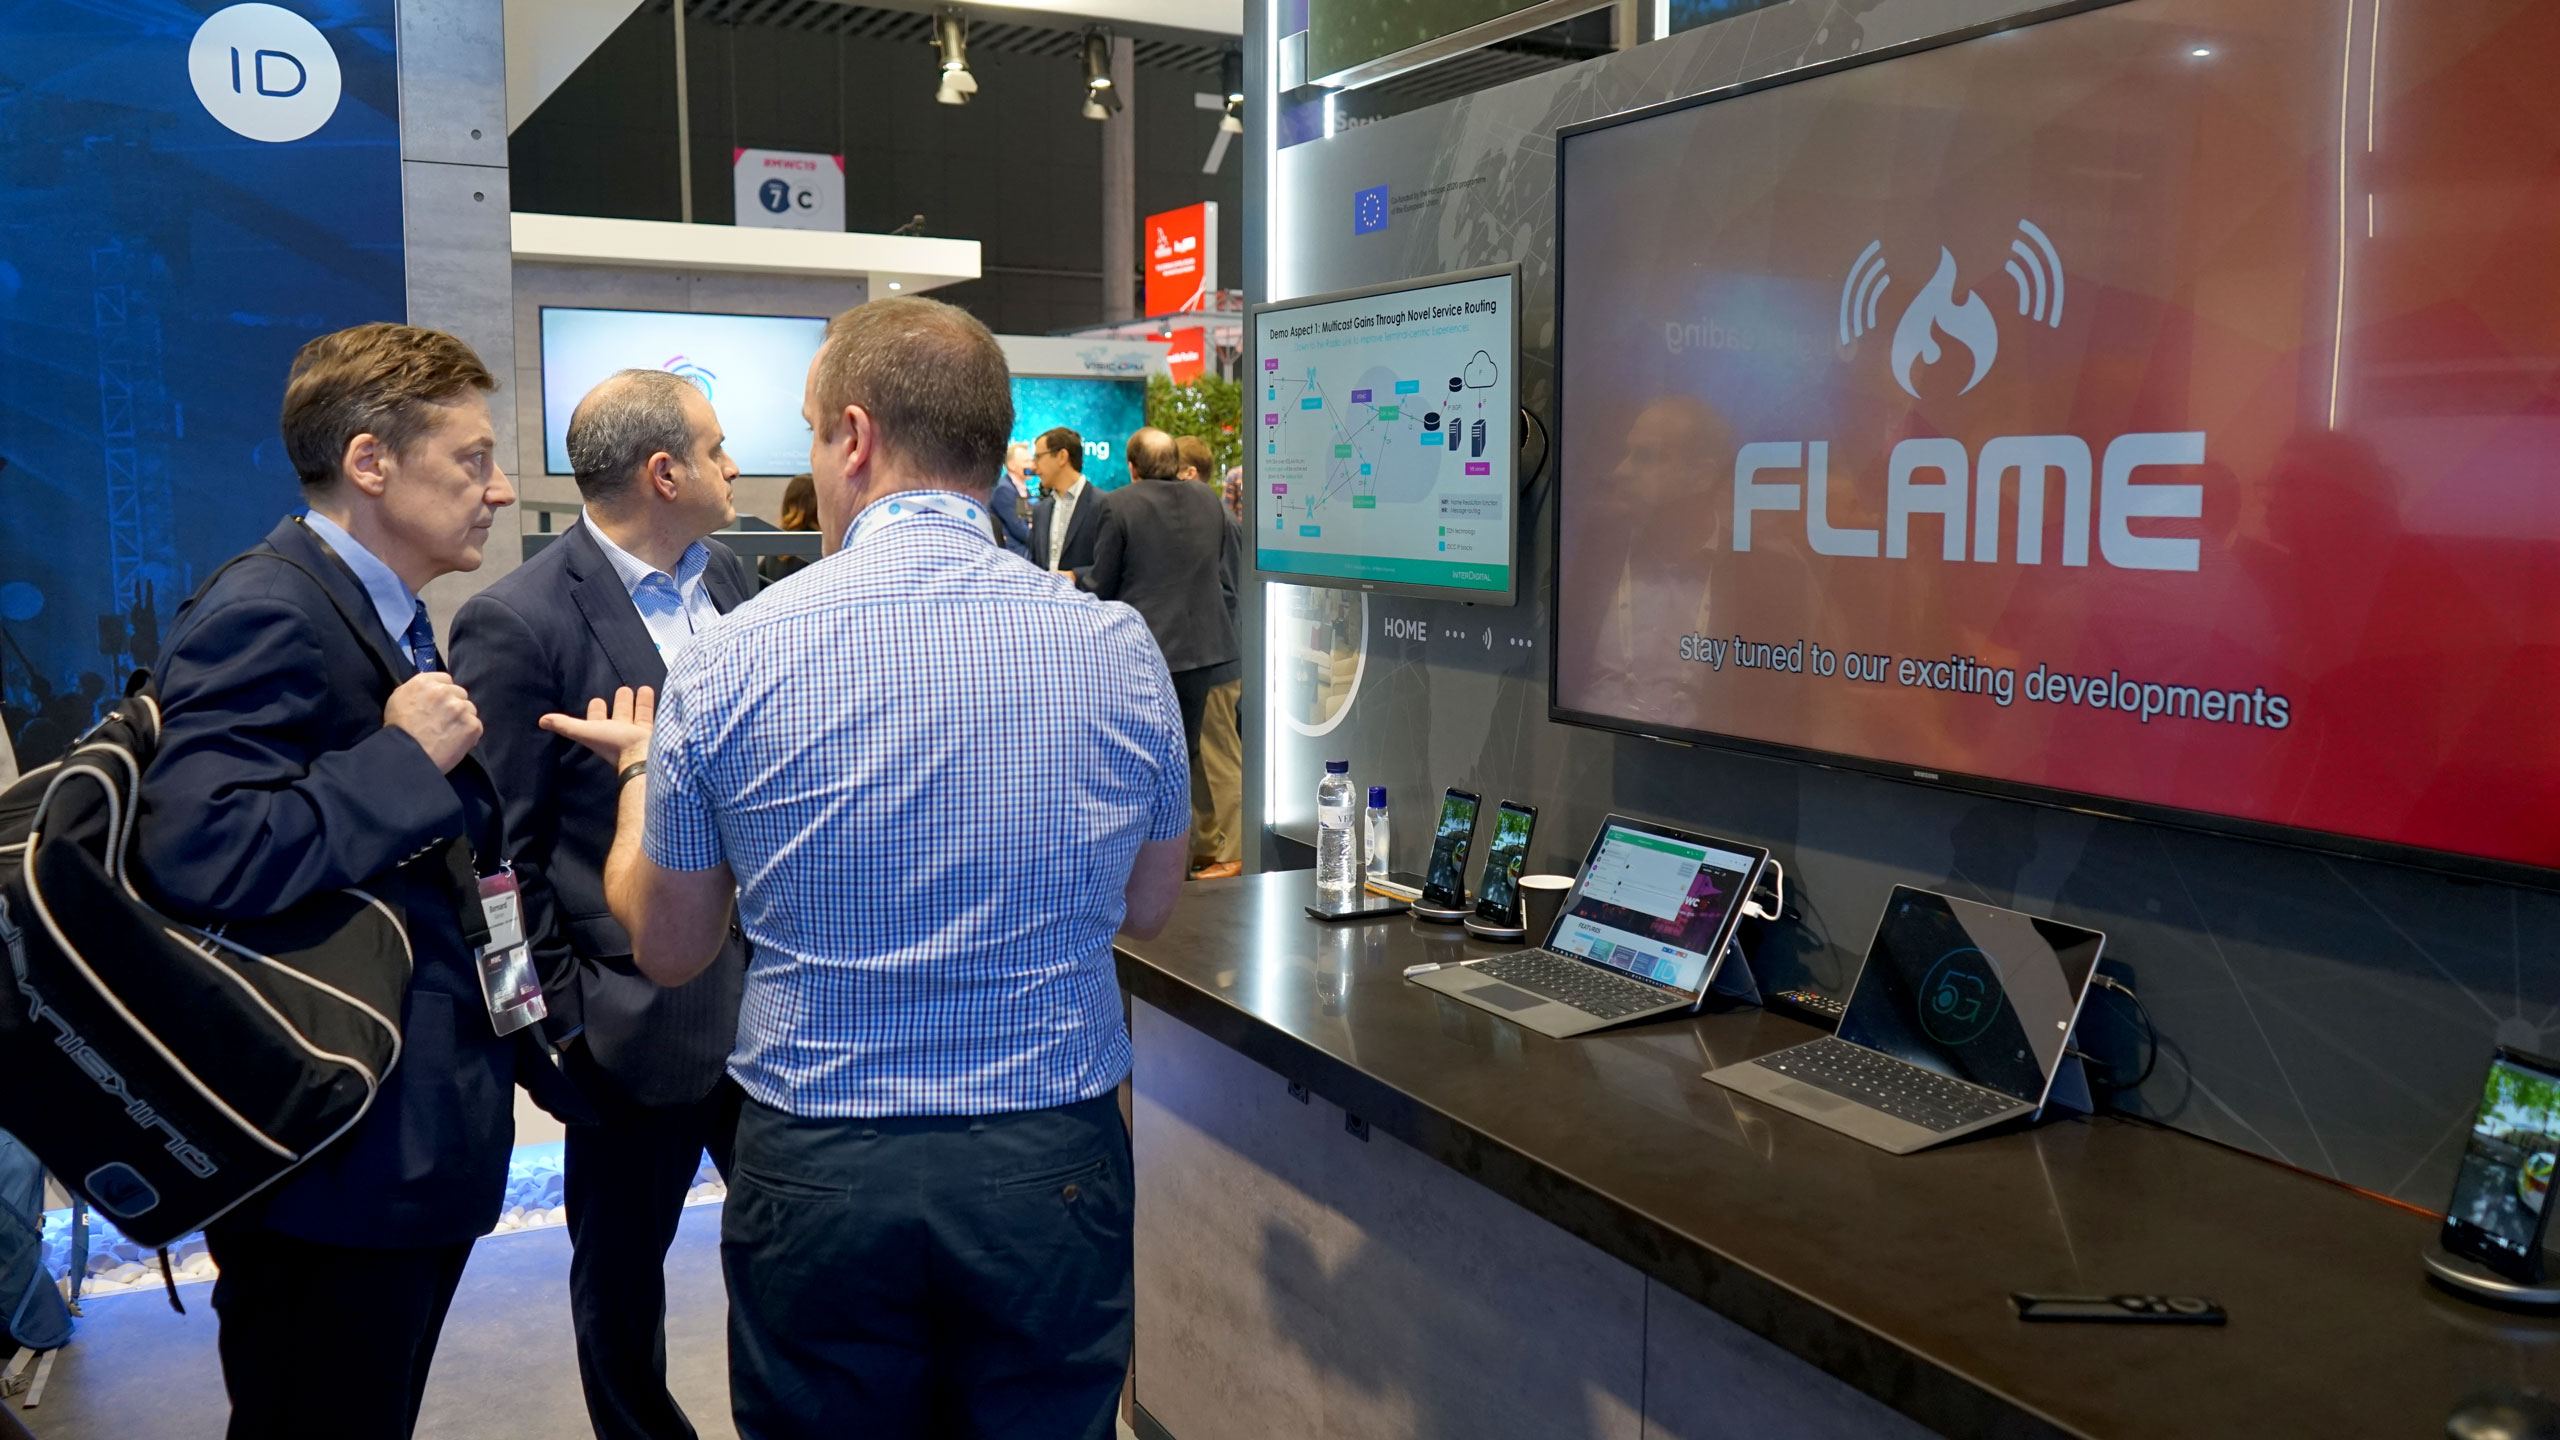 The FLAME video at MWC